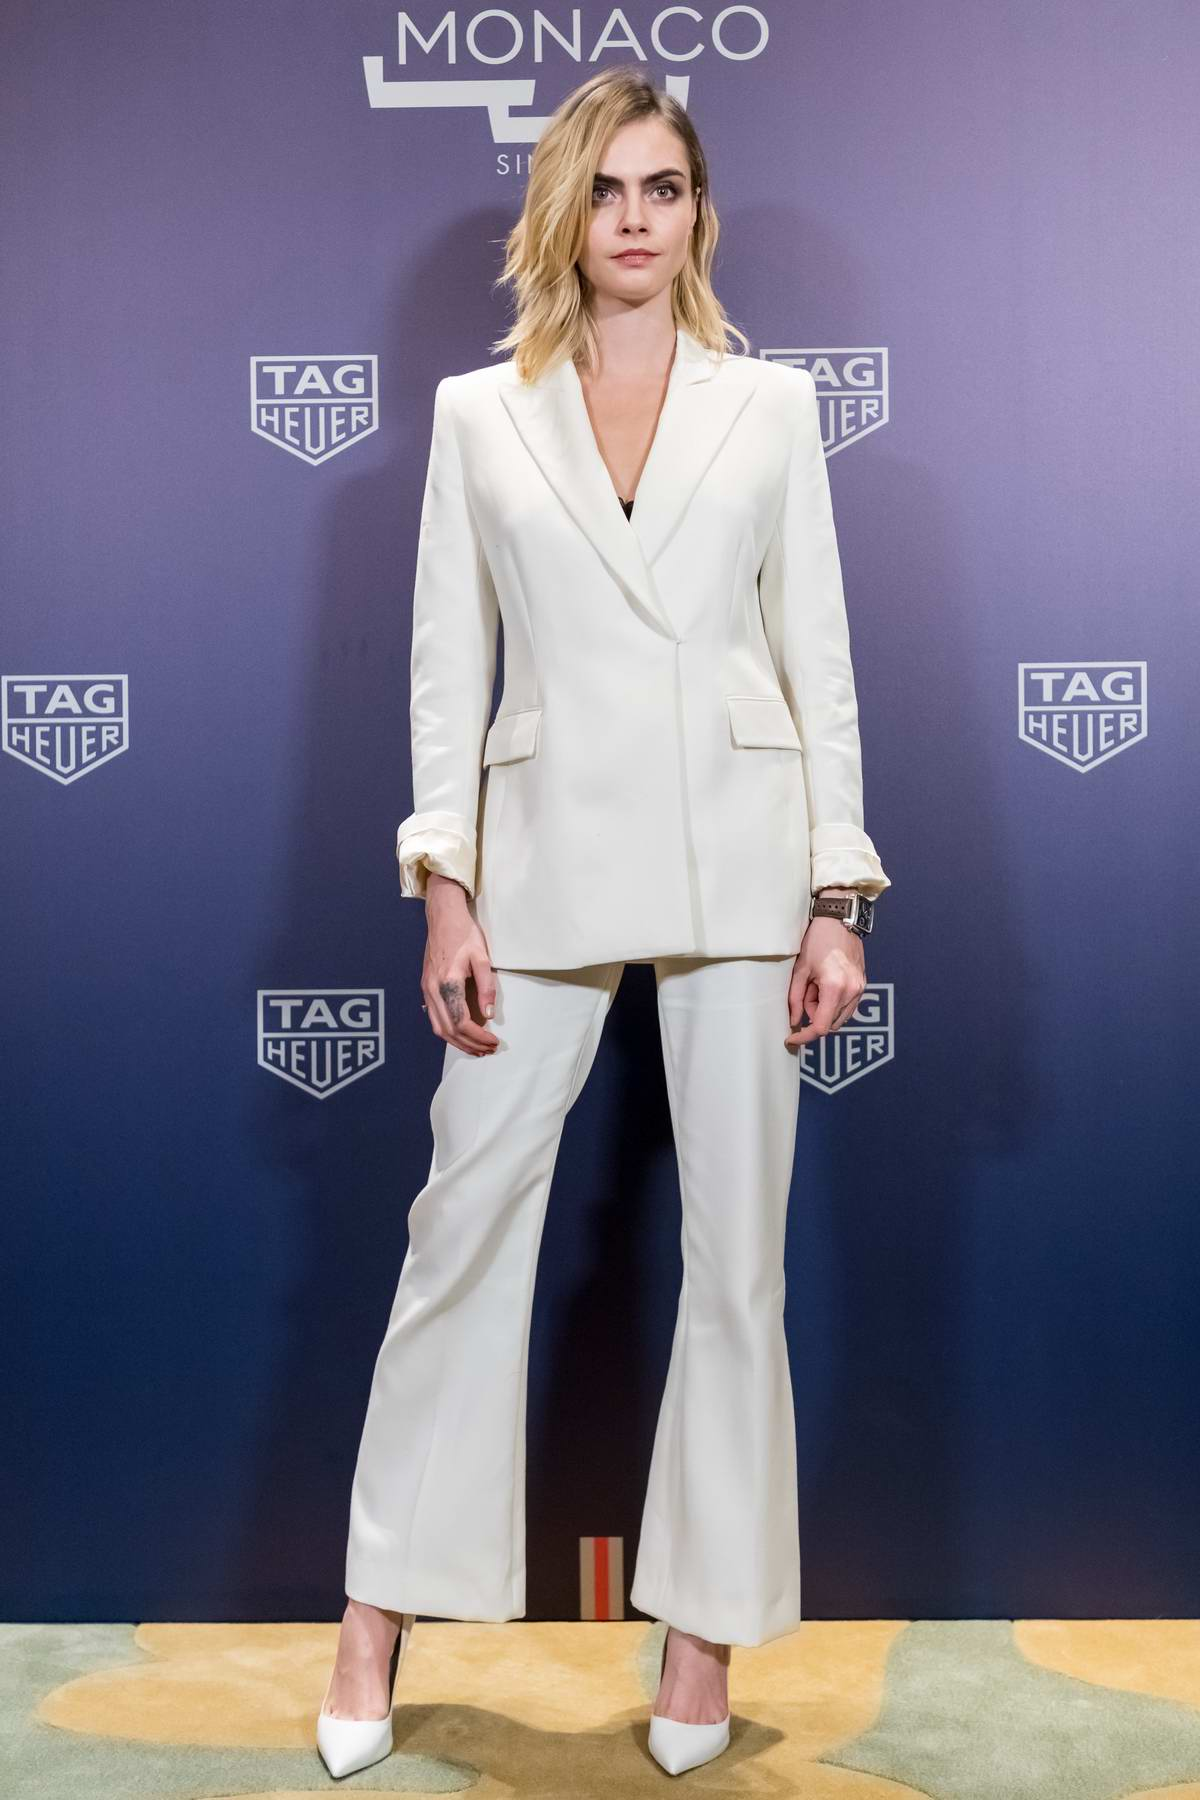 Cara Delevingne attends TAG Heuer photocall in Shanghai, China